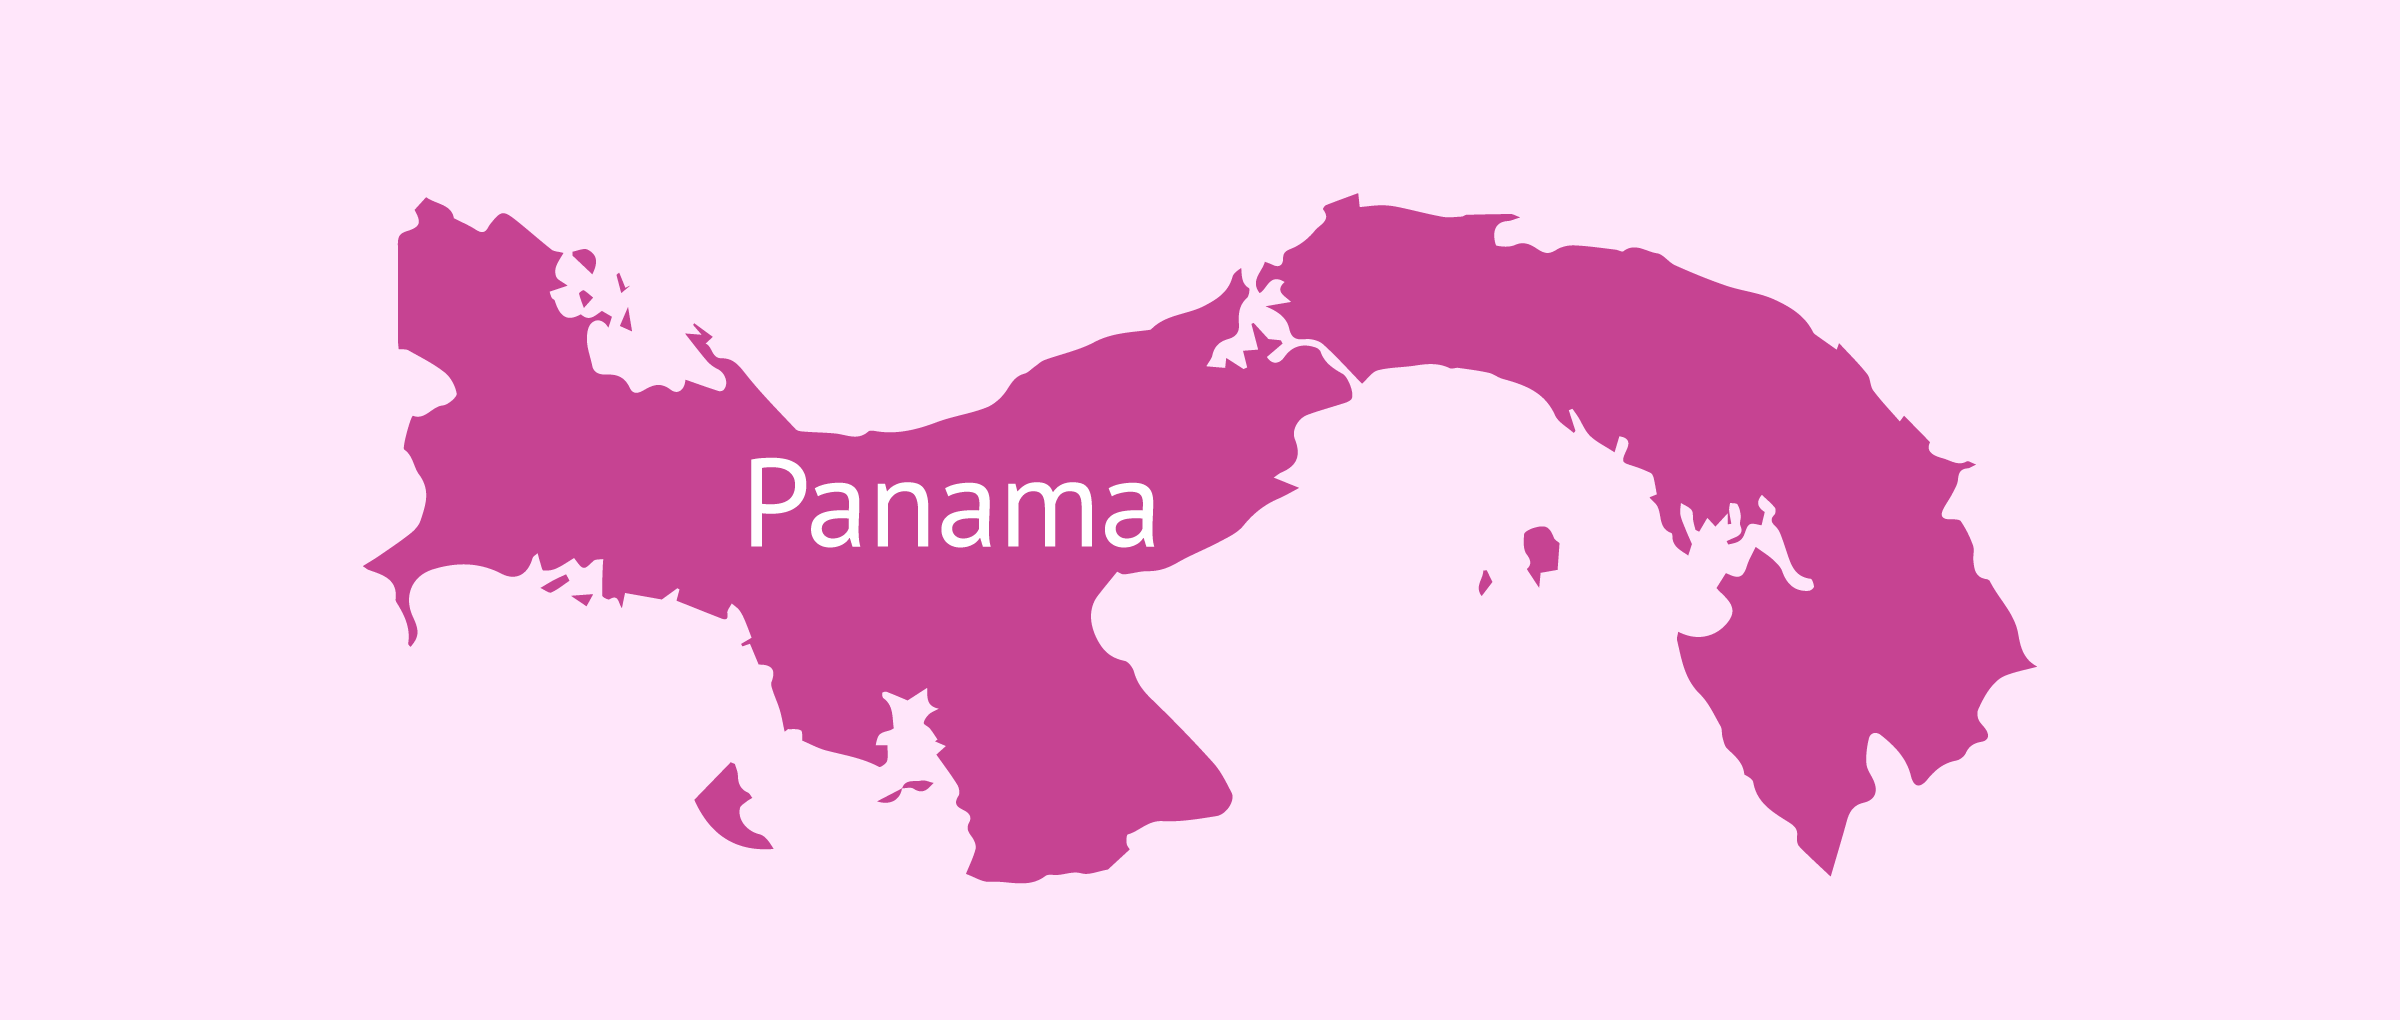 Surrogacy in Panama: Legal Situation